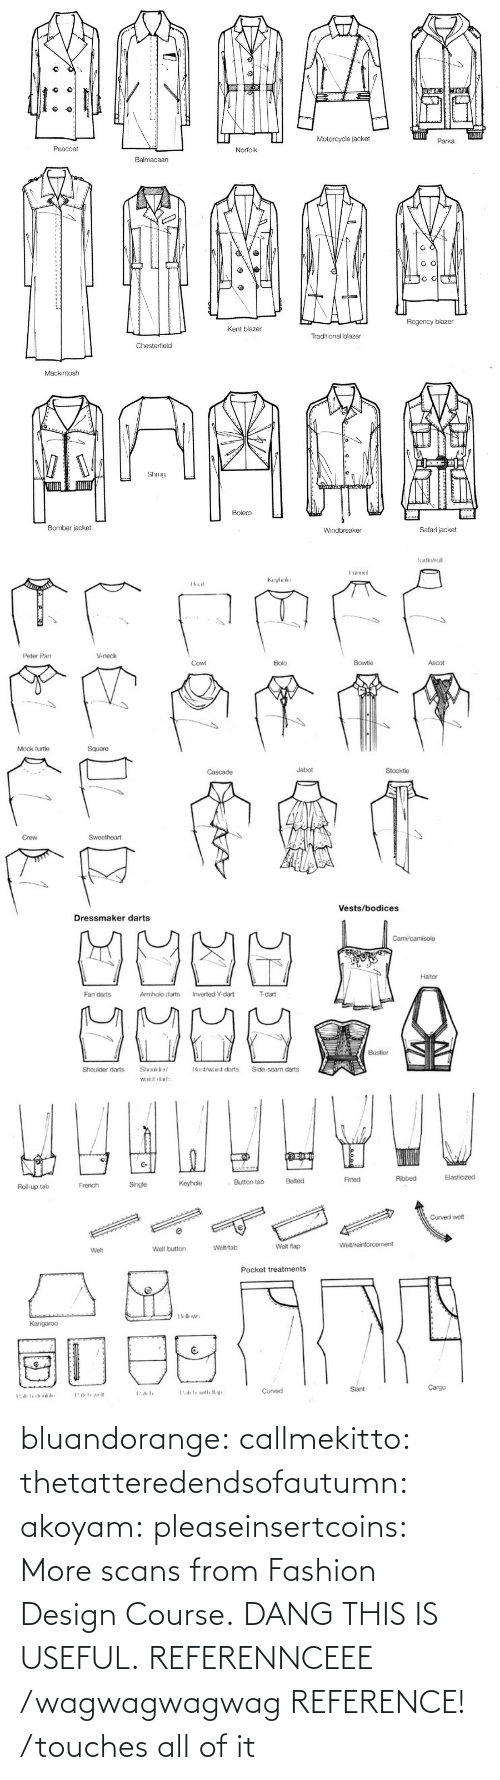 Fashion: bluandorange:  callmekitto:  thetatteredendsofautumn:  akoyam:  pleaseinsertcoins:  More scans from Fashion Design Course.  DANG THIS IS USEFUL.  REFERENNCEEE  /wagwagwagwag REFERENCE!  /touches all of it